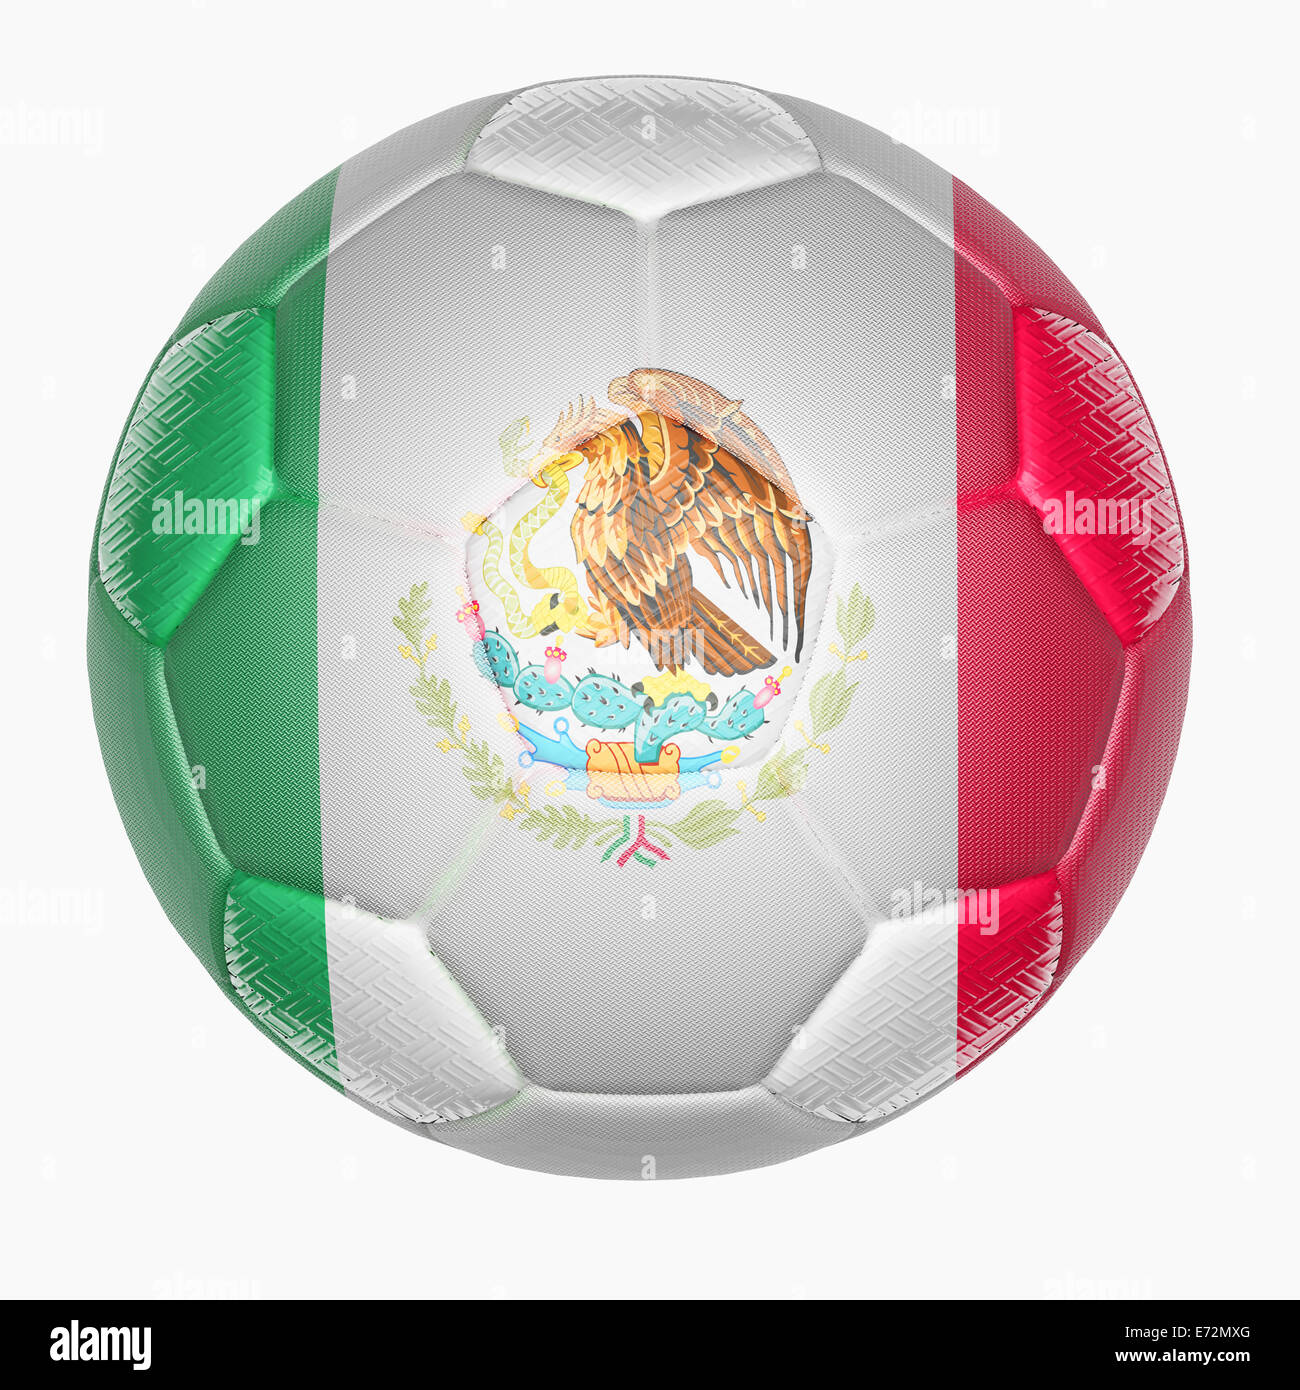 Soccer ball mapping with Mexico flag - Stock Image